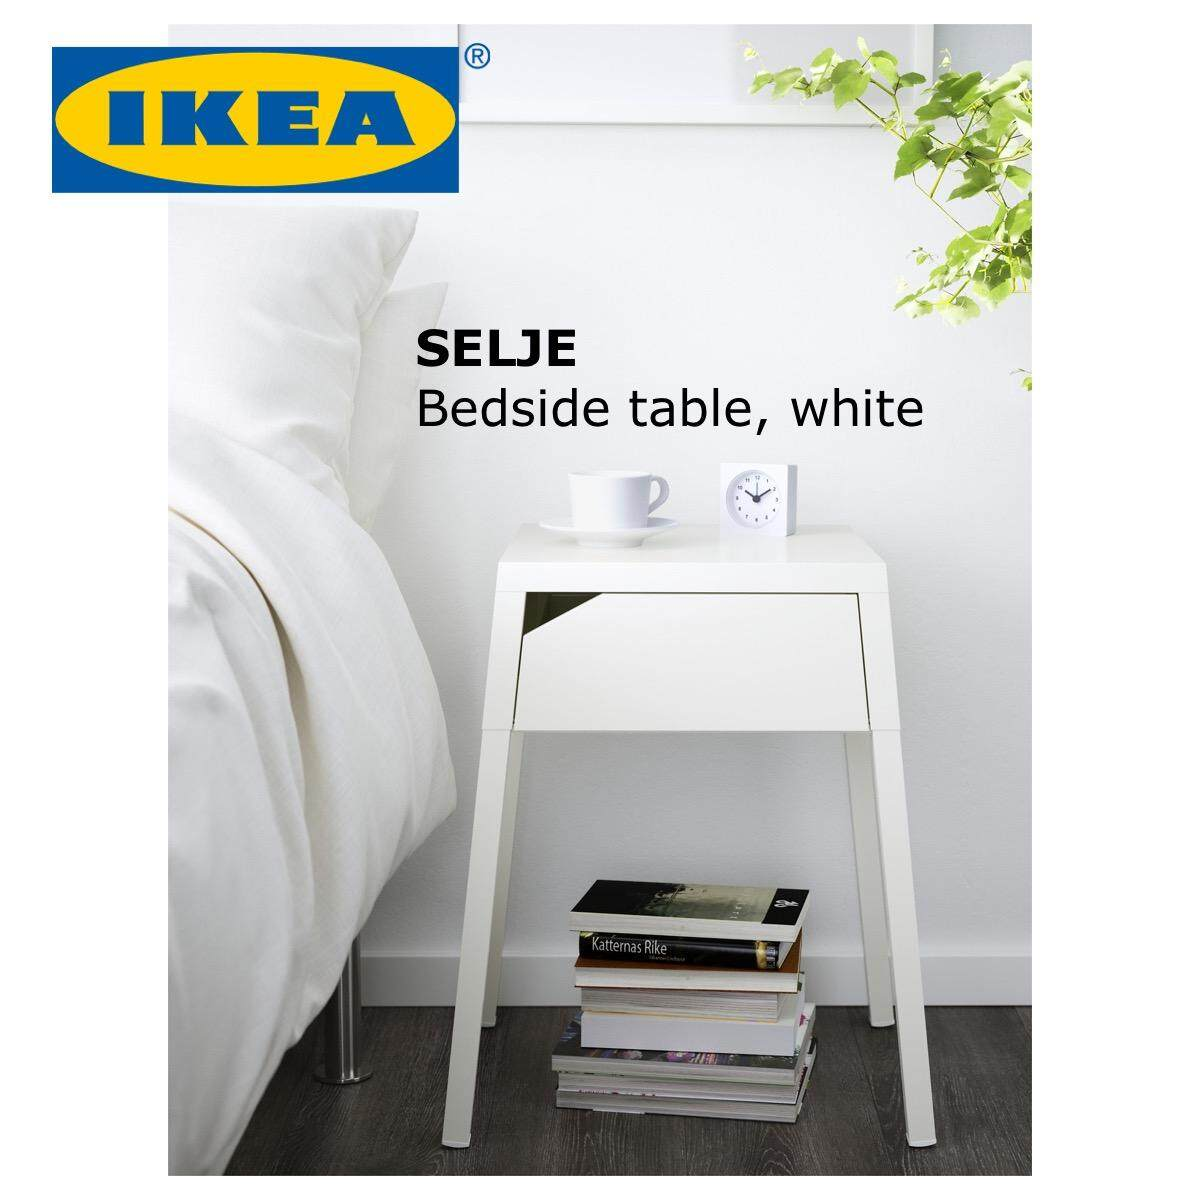 Ikea Home Bedside Tables Price In Malaysia Best Ikea Home Bedside